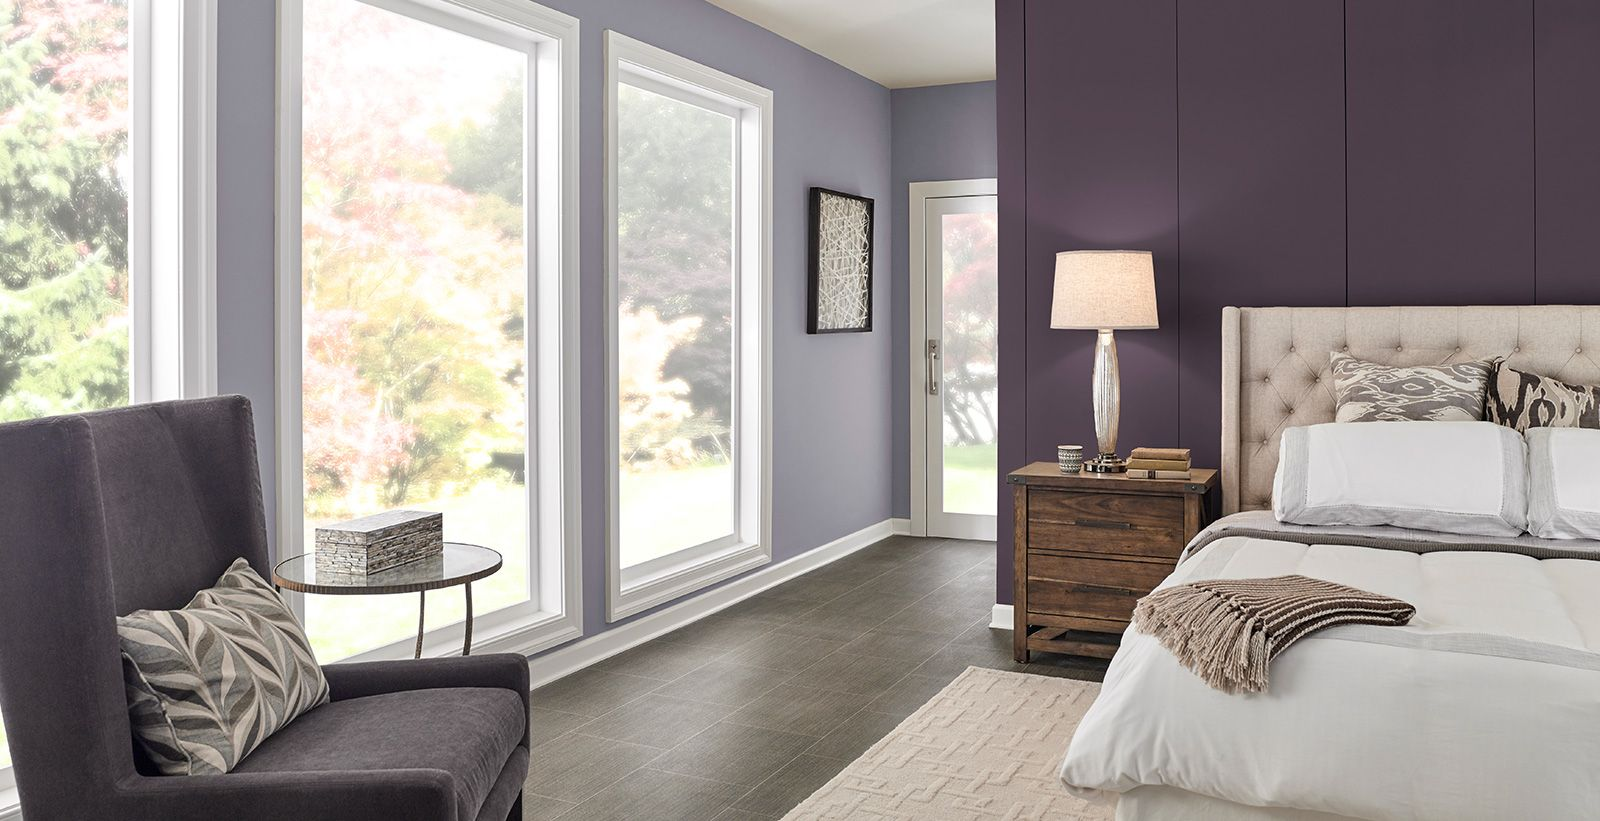 Formal Bedroom Relaxed and Calming Bedroom Gallery